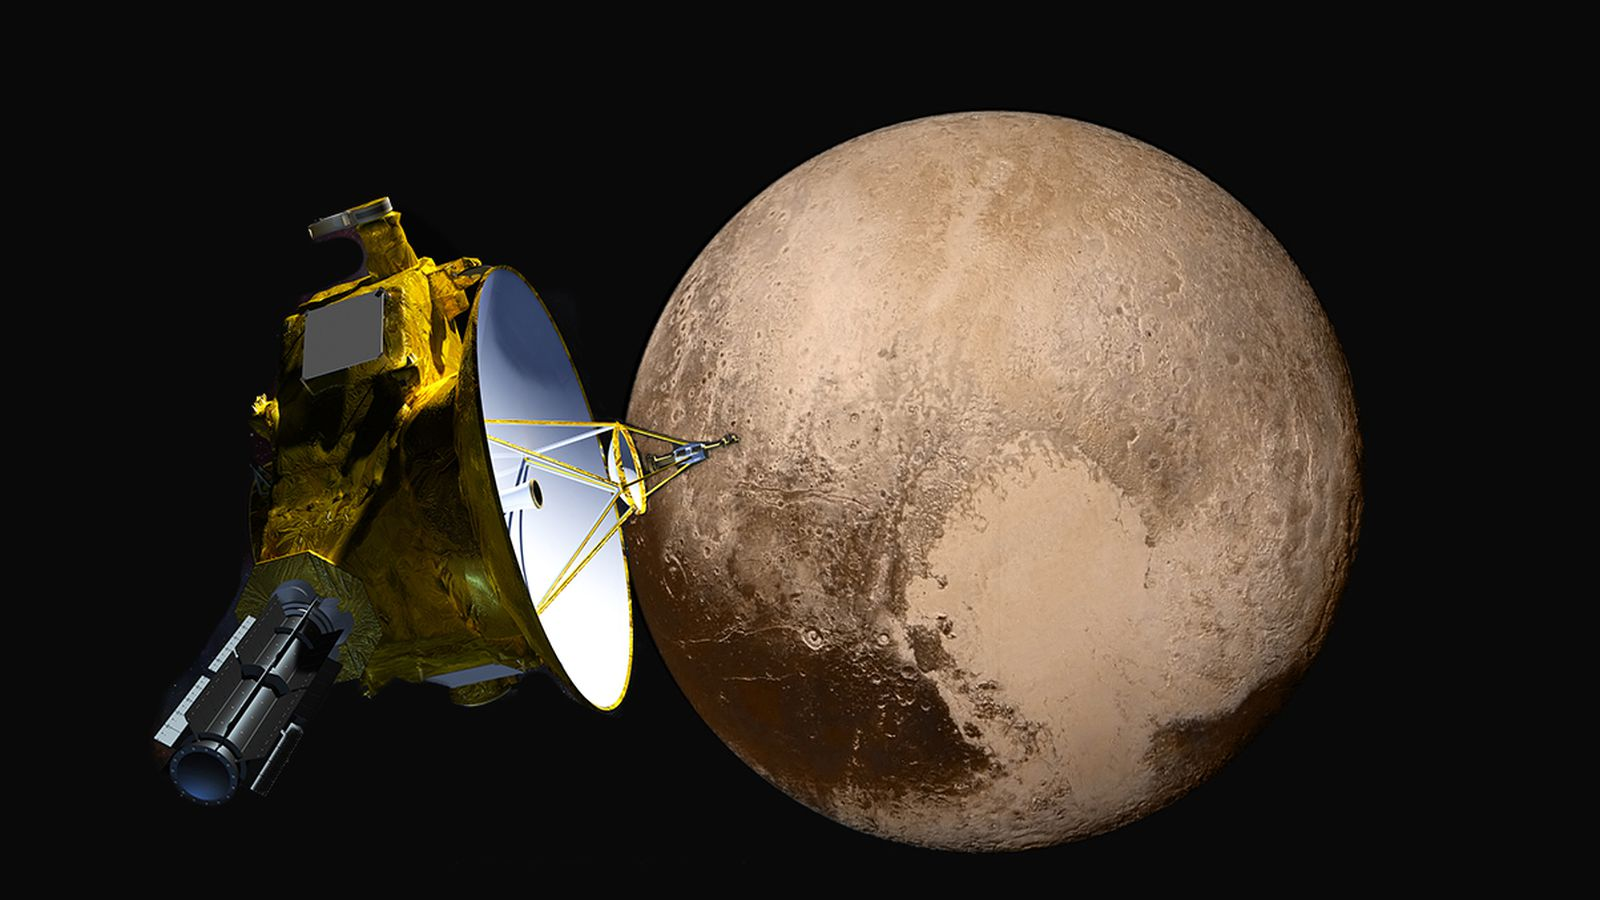 How NASAs New Horizons Team Pulled Off The Pluto Flyby The Verge